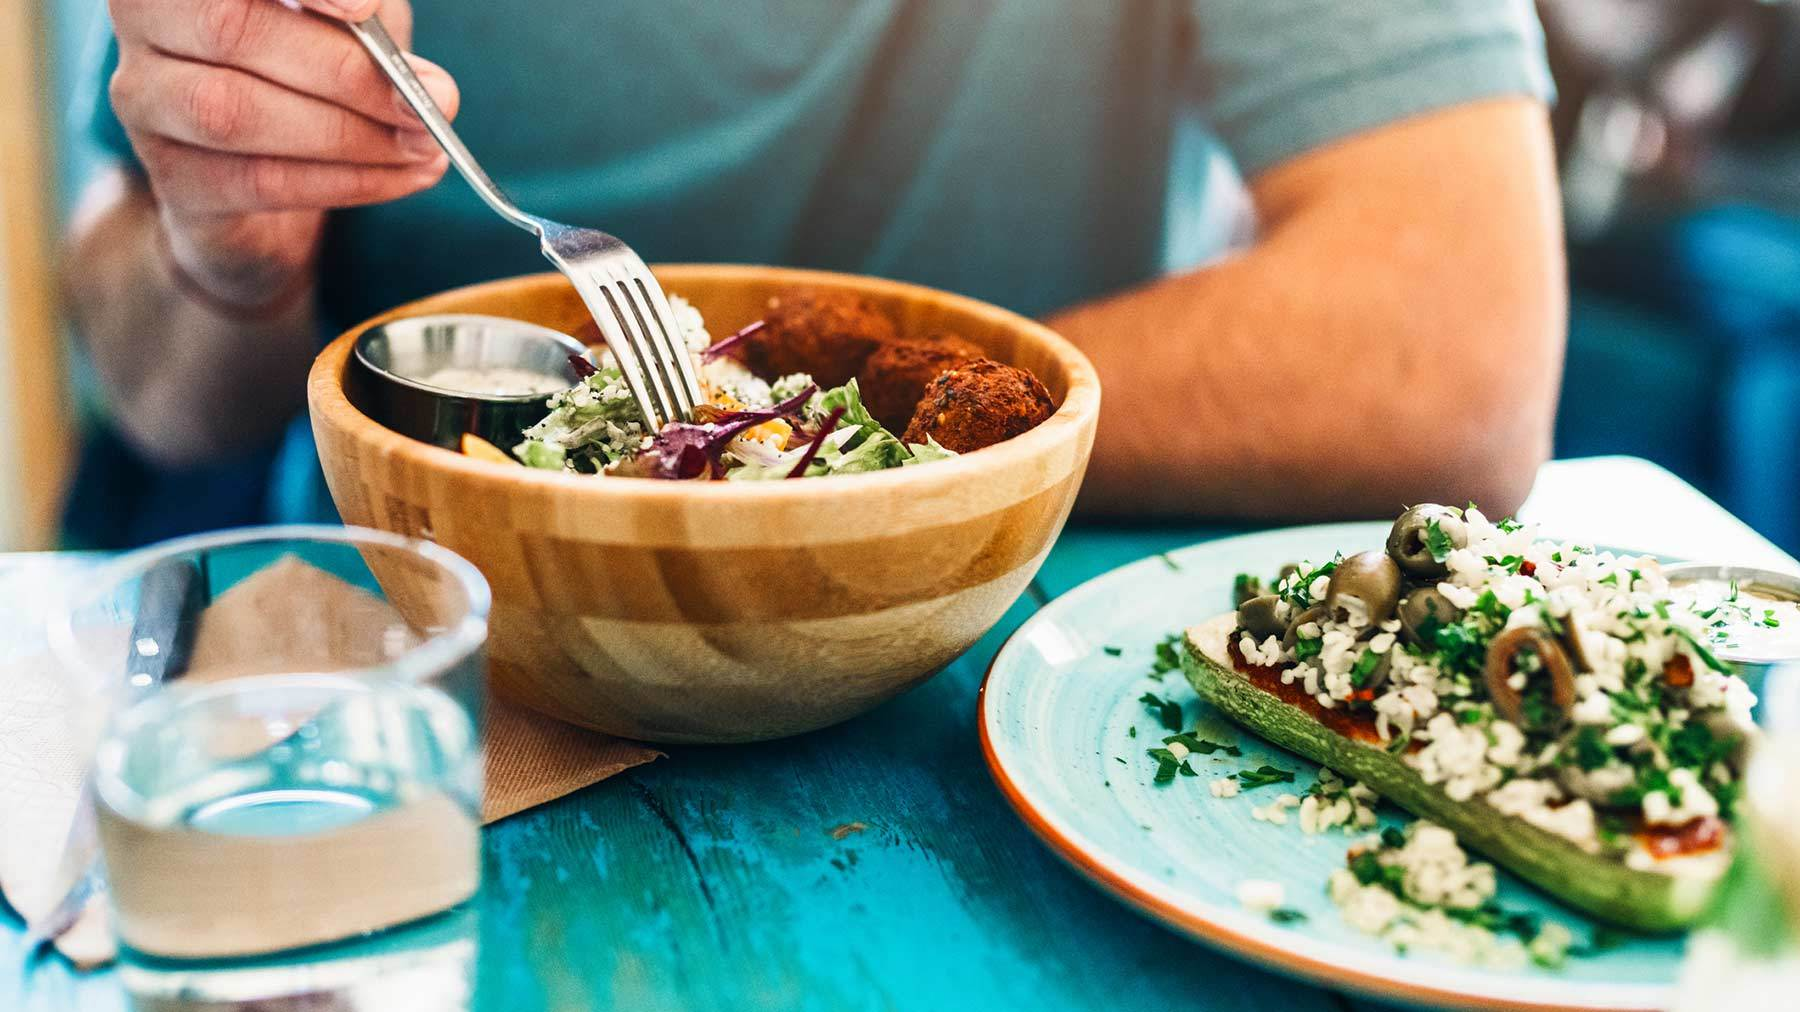 7 Science-Backed Reasons to Eat More Protein